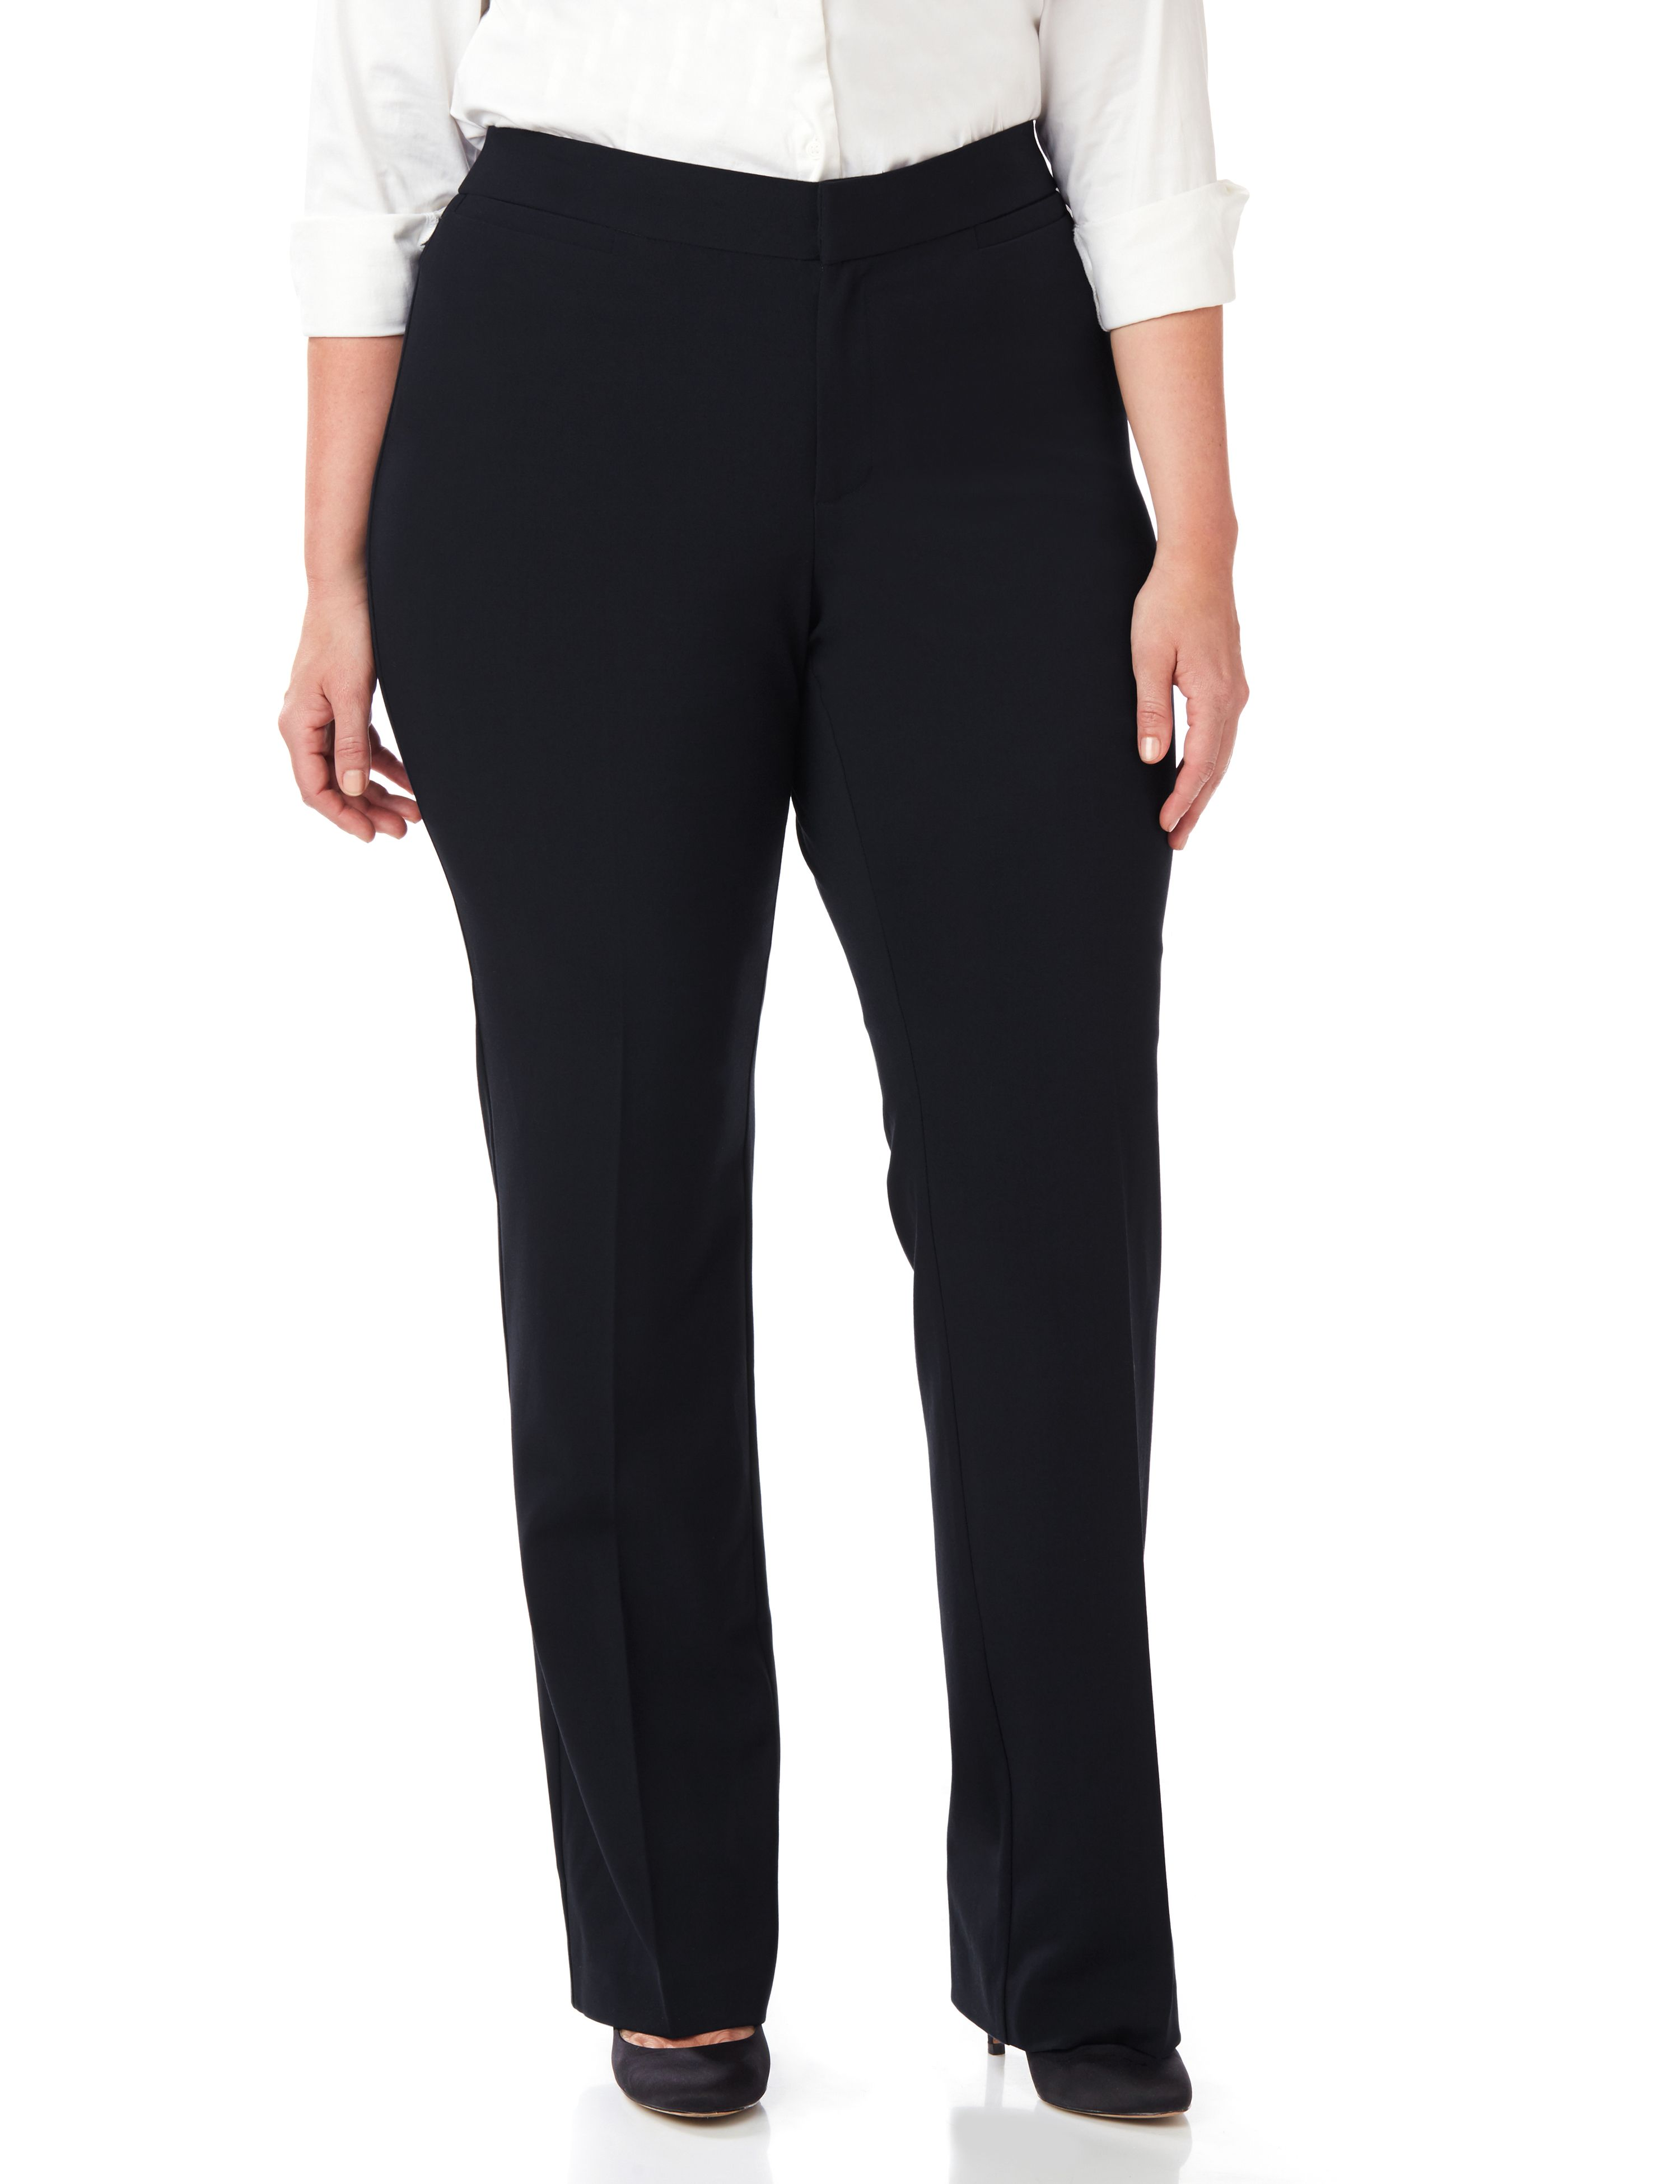 Right Fit Pant (Curvy) Right Fit Pant (Curvy) MP-201373941